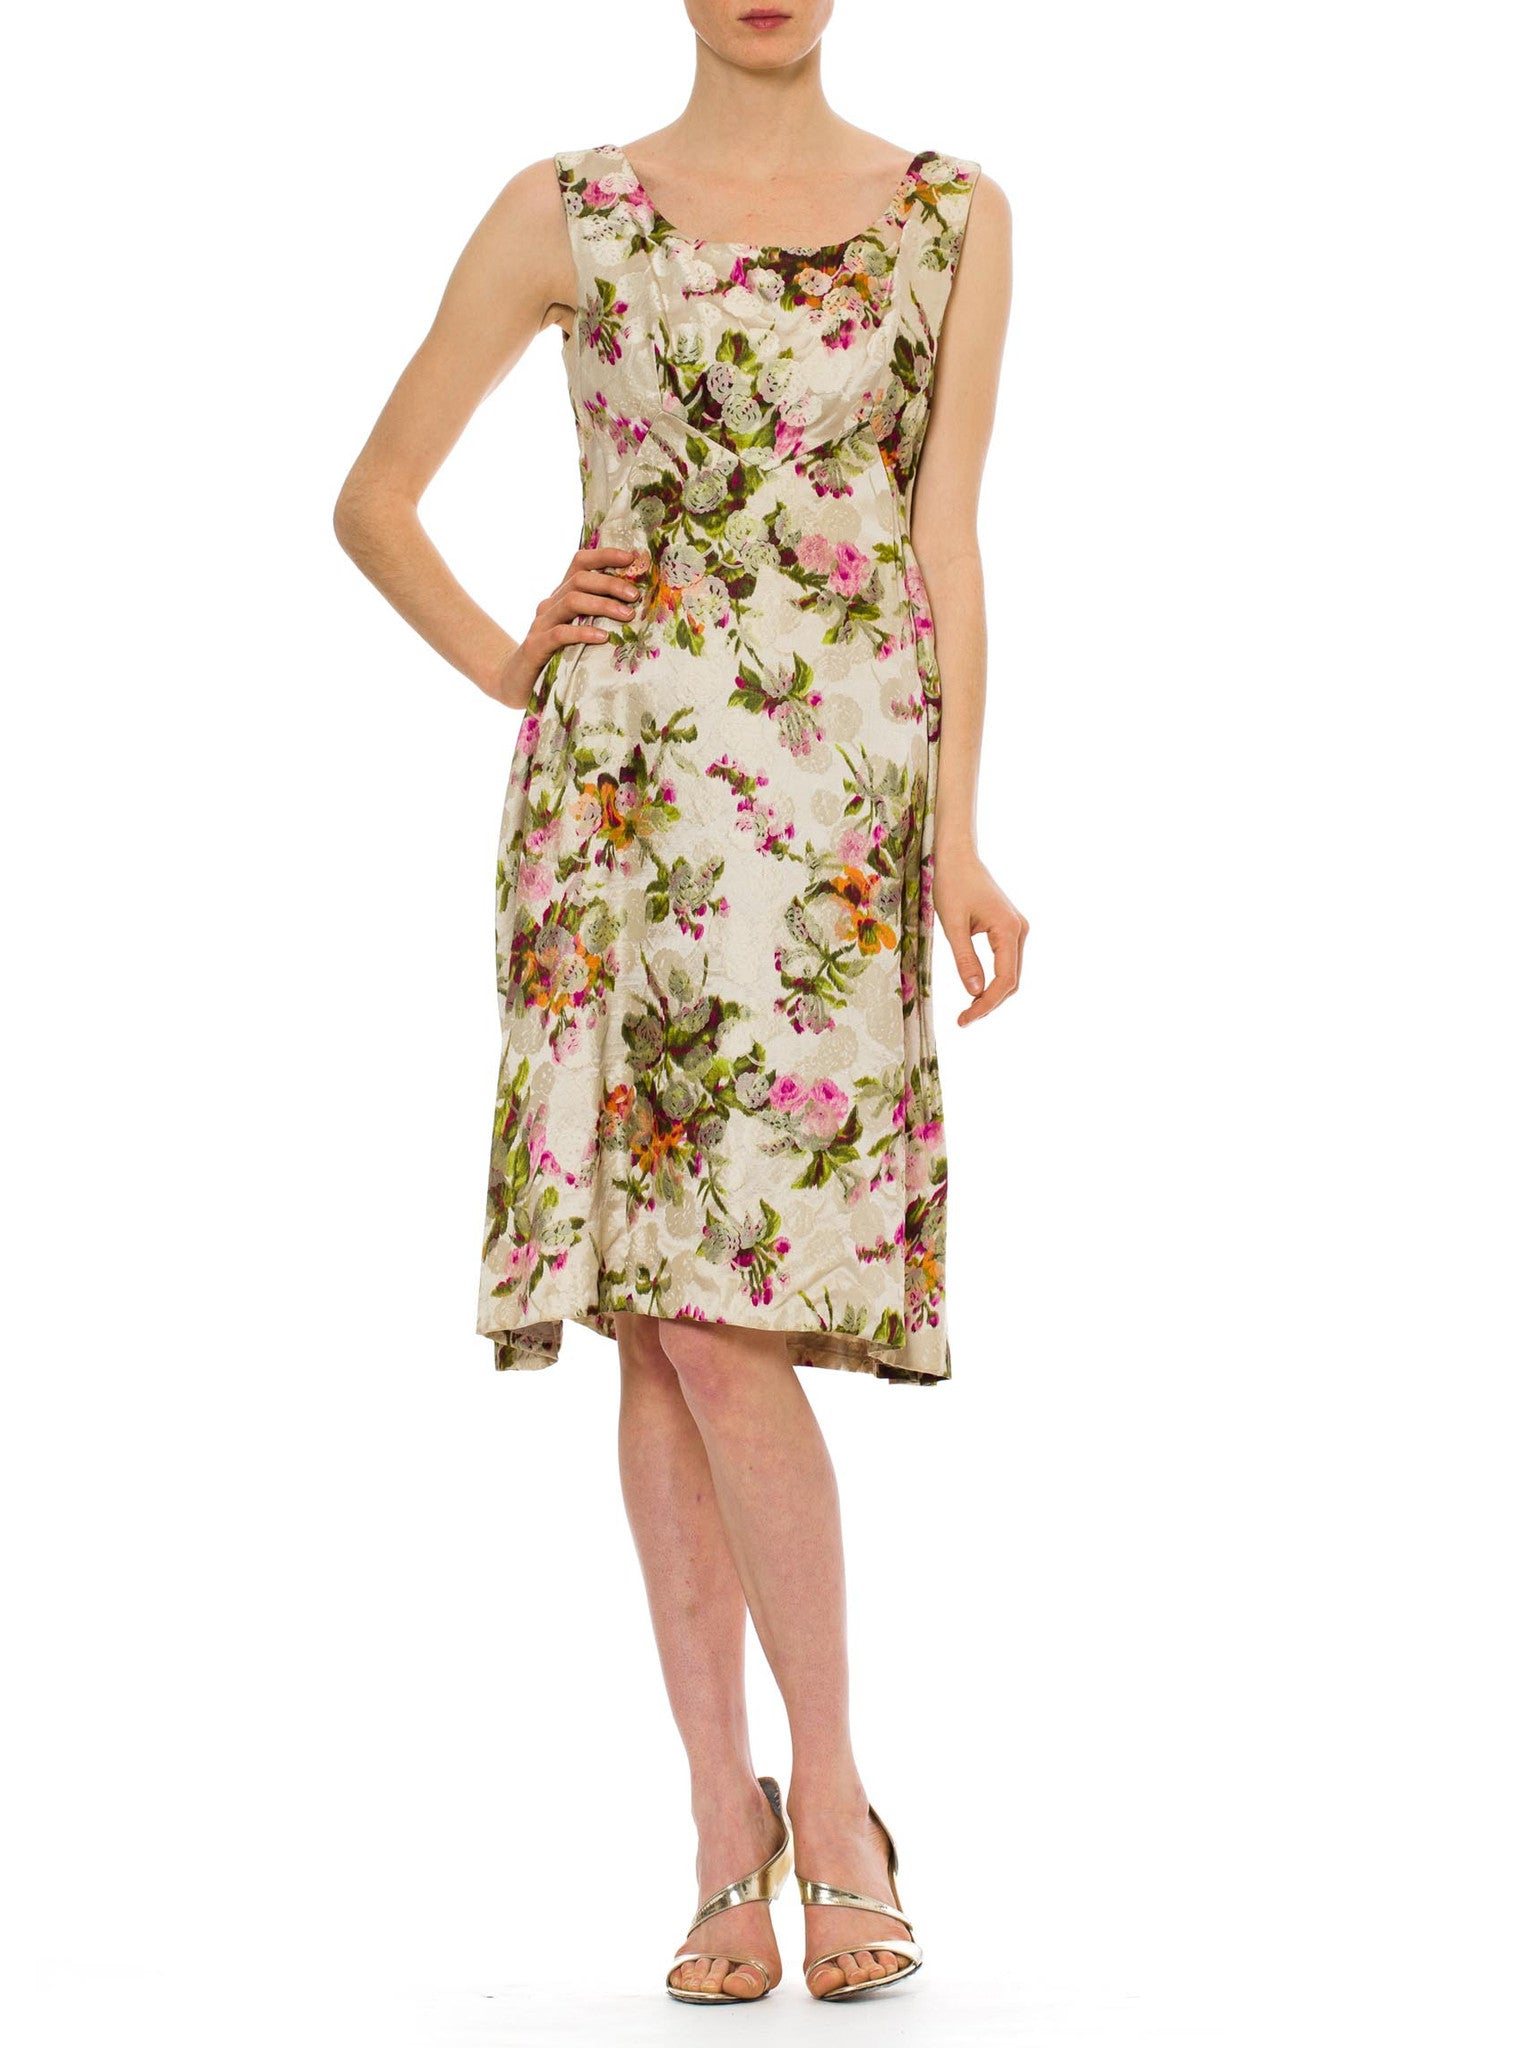 1960s Vintage Lizy Perette Multicolored Floral Dress